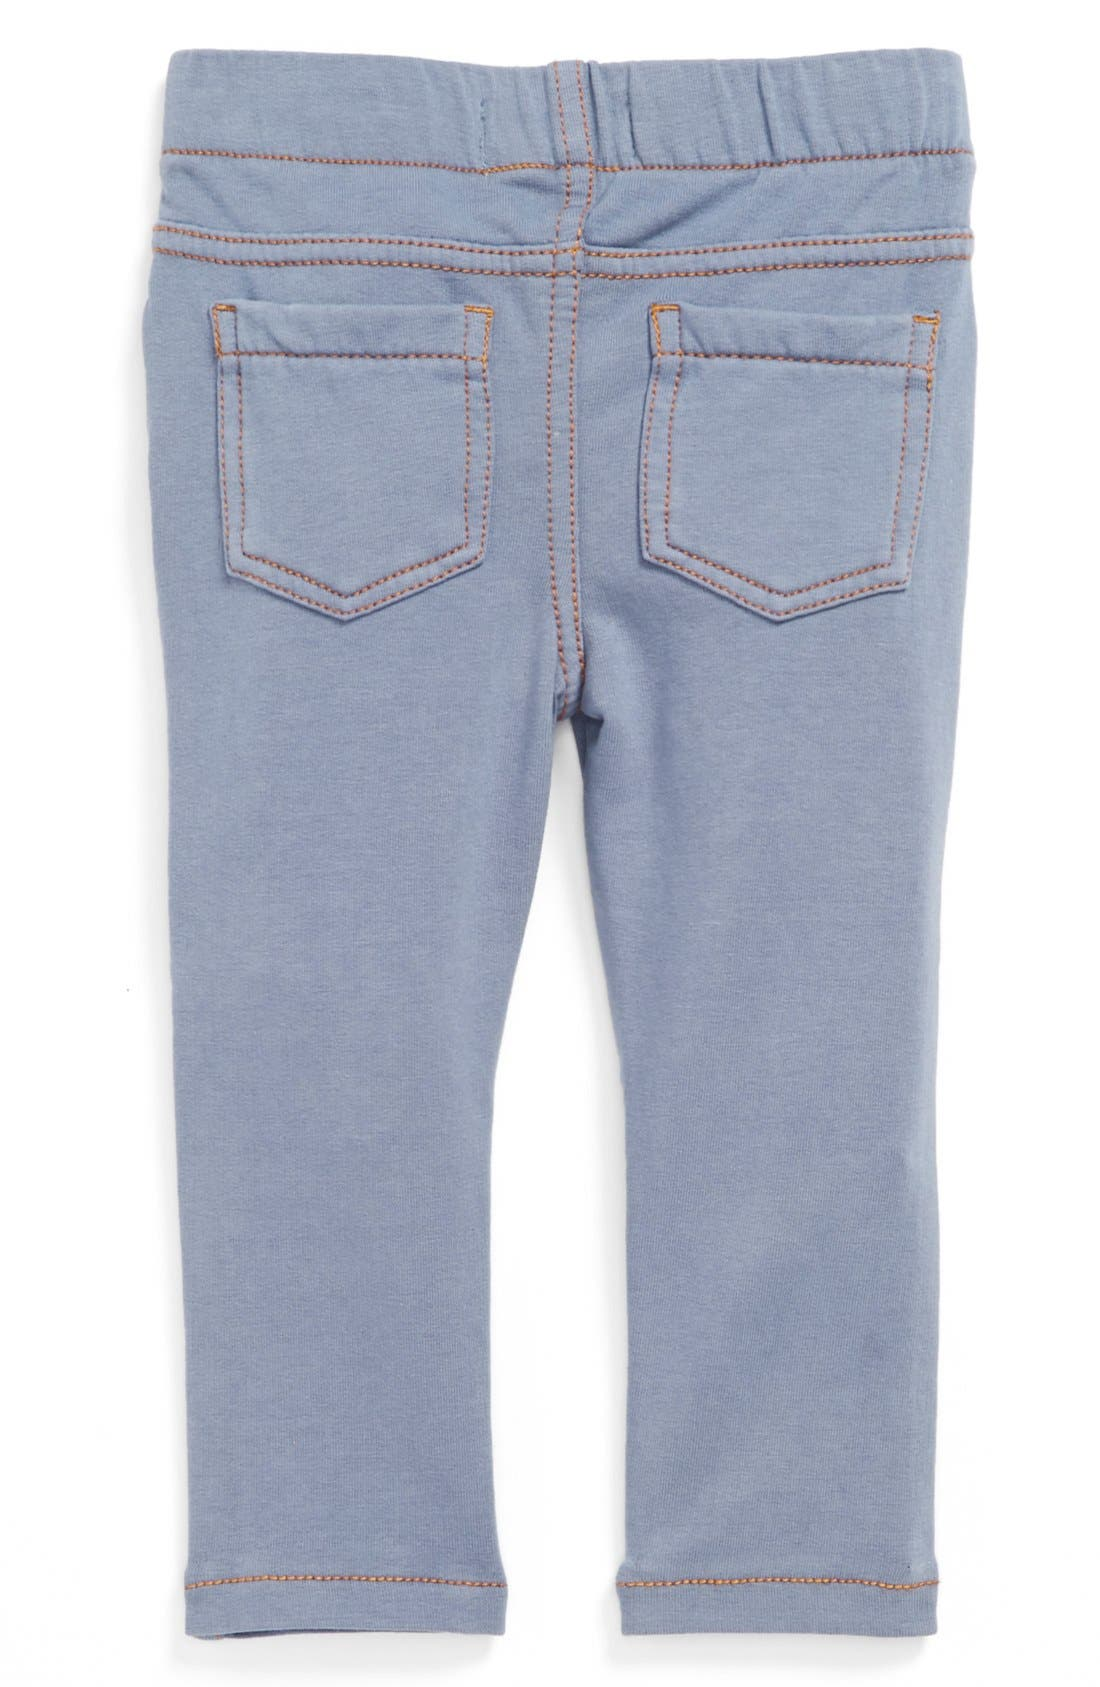 Alternate Image 1 Selected - Tucker + Tate 'Sadie' Denim Jeggings (Baby Girls)